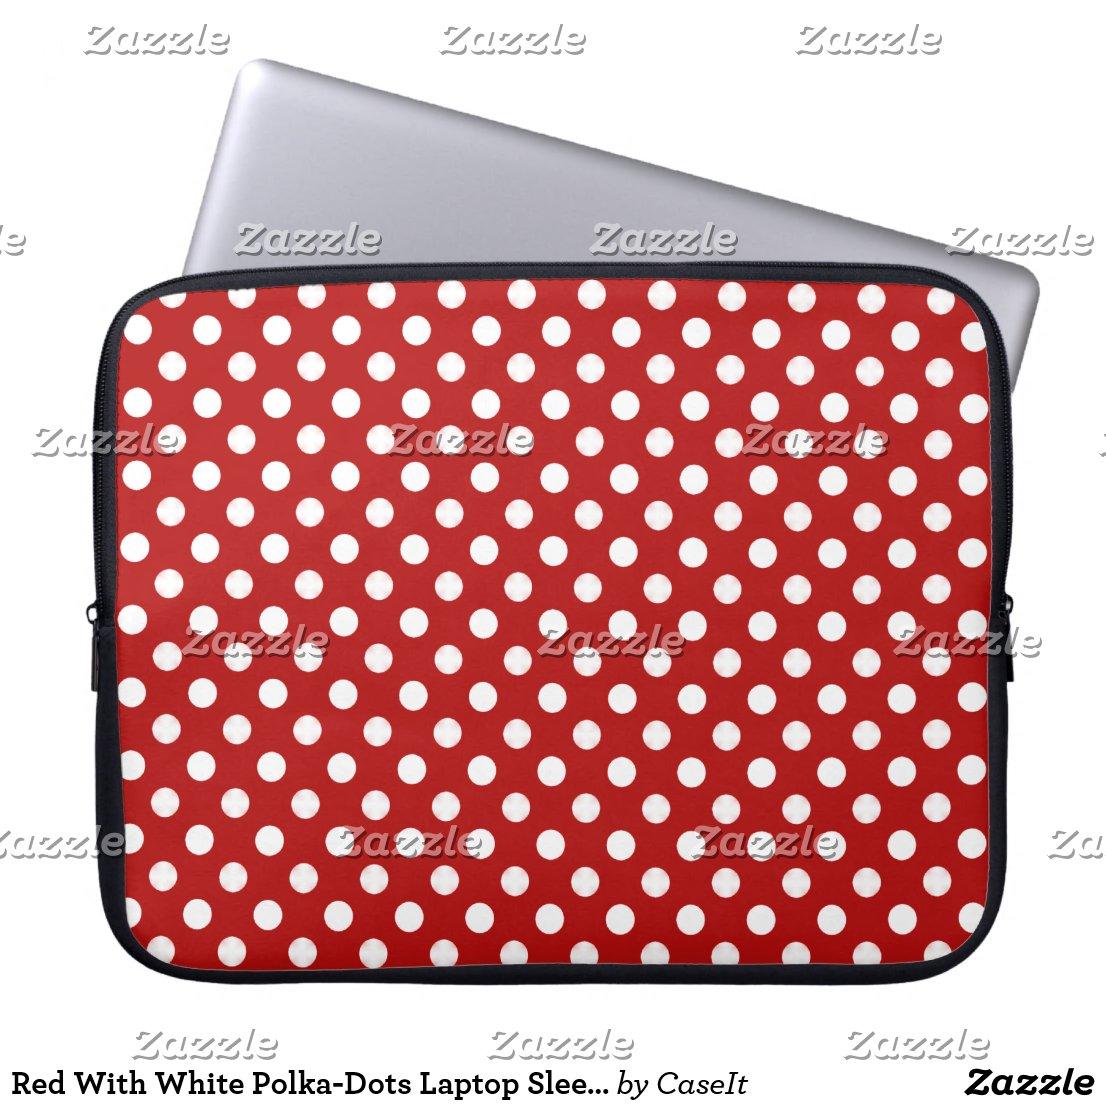 Red With White Polka-Dots Laptop Sleeve